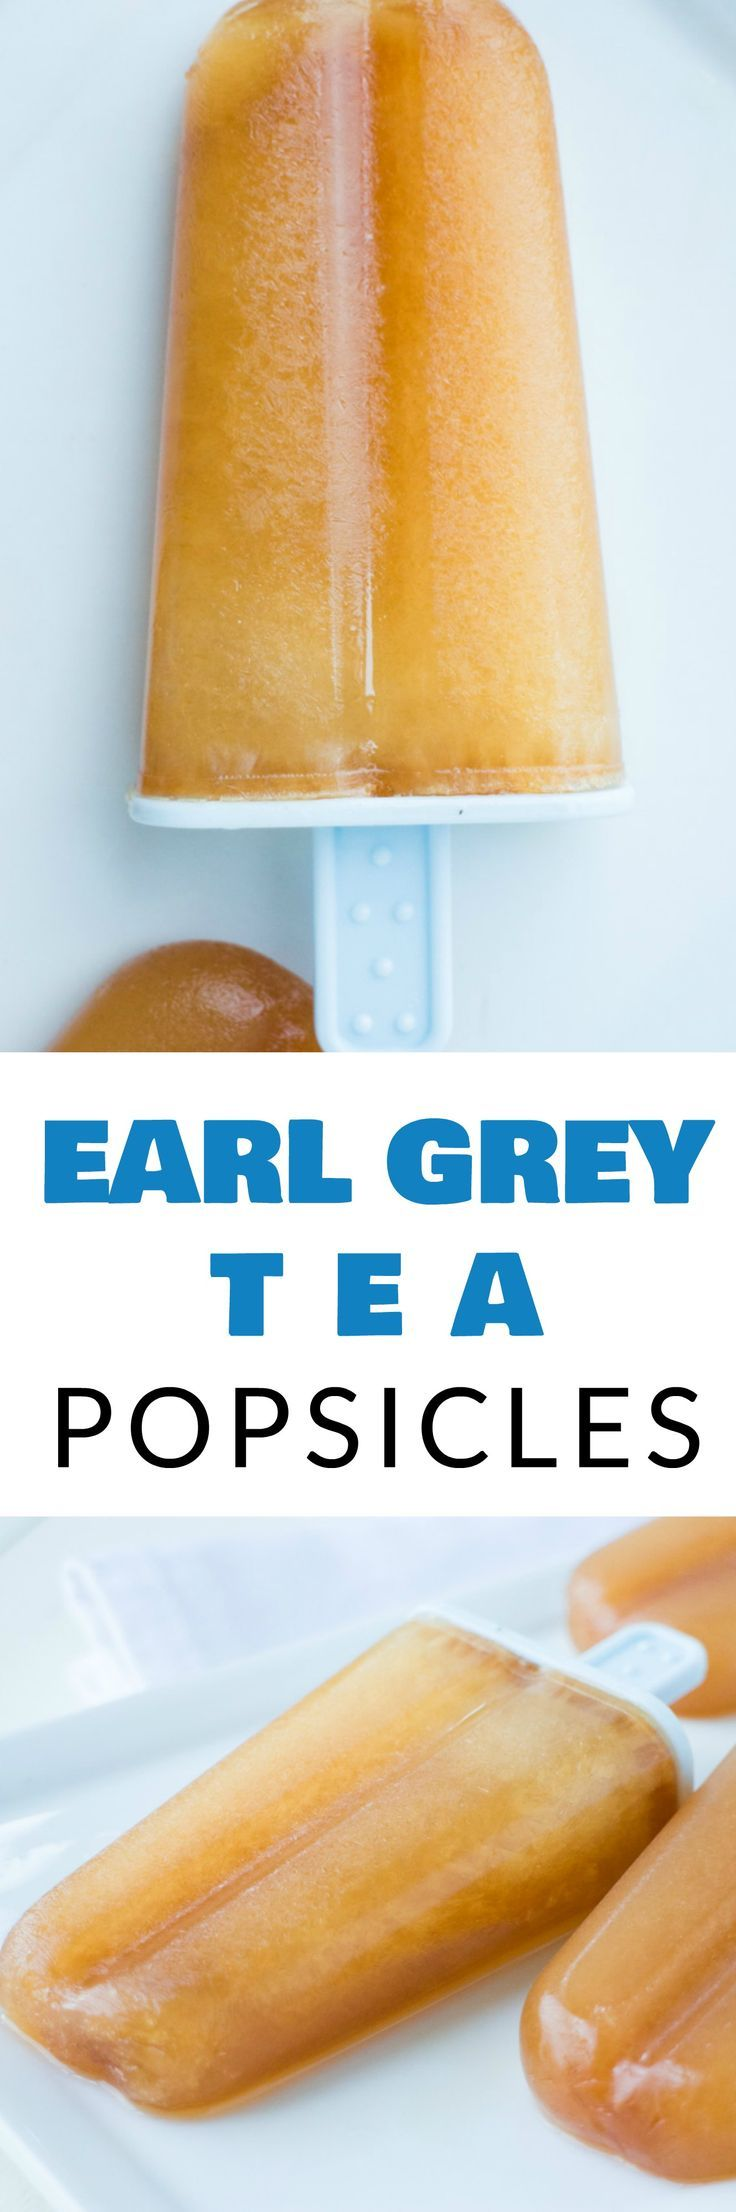 EASY 25 calorie Earl Grey Tea Popsicles are the best homemade Summer dessert! These popsicles are made with 3 ingredients and are only 25 calories a piece making them a healthy popsicle! Experiment with different teas with this DIY recipe!